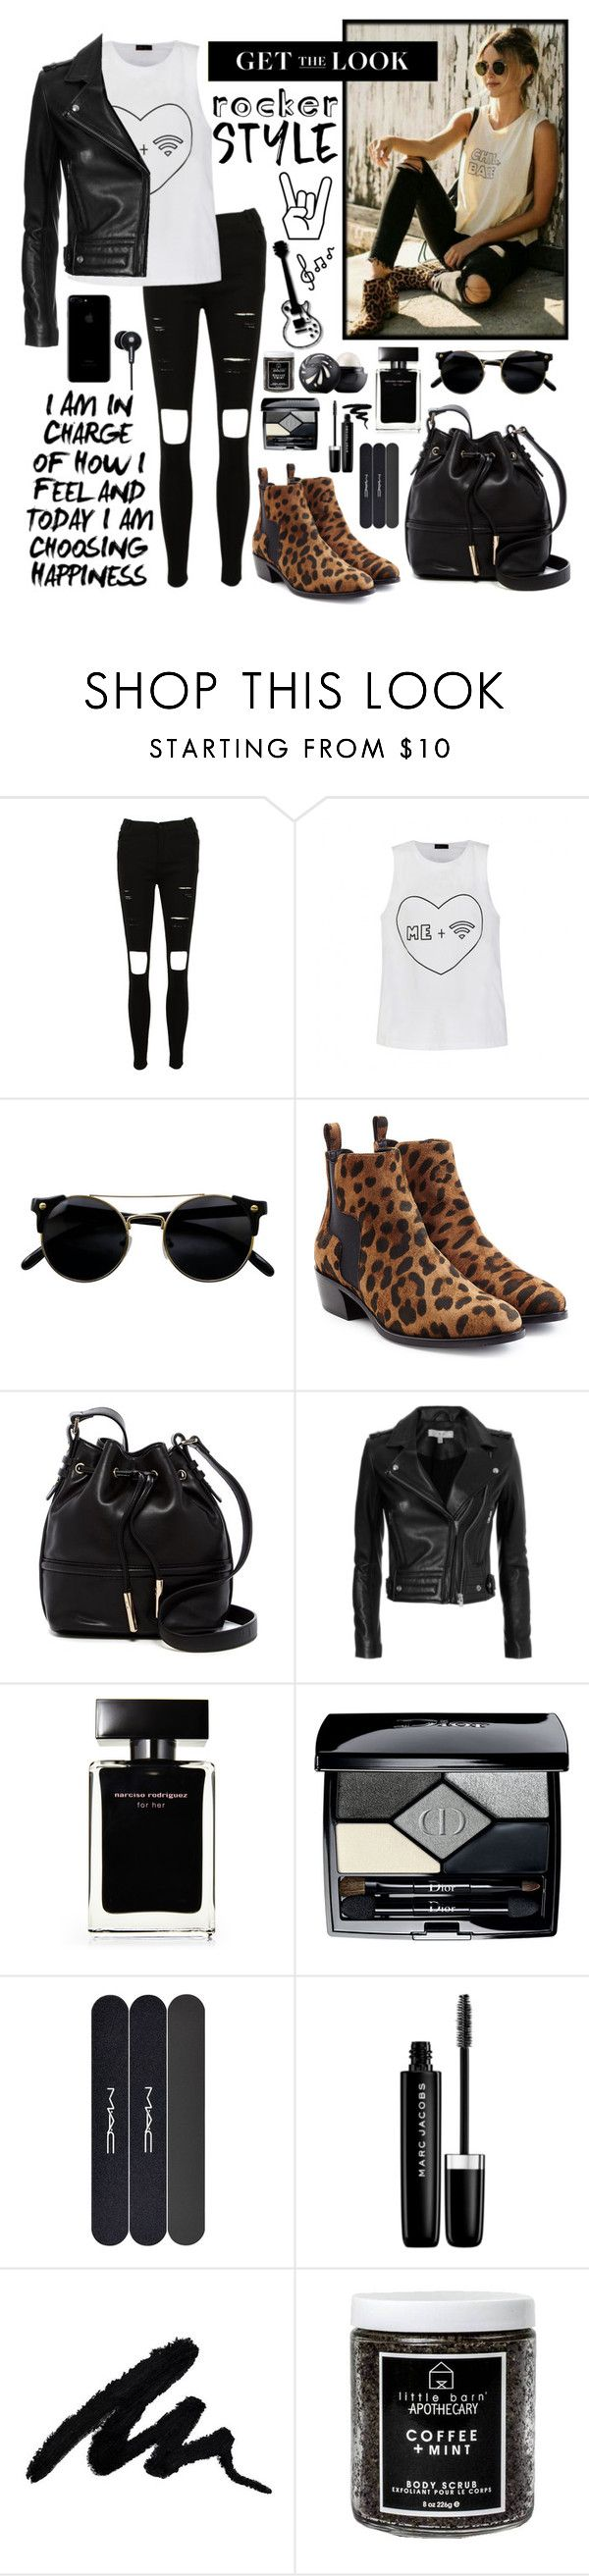 """Get The Rocker Look"" by whims-and-craze ❤ liked on Polyvore featuring Ally Fashion, Pierre Hardy, French Connection, IRO, Narciso Rodriguez, Eos, Christian Dior, MAC Cosmetics, Marc Jacobs and Little Barn Apothecary"